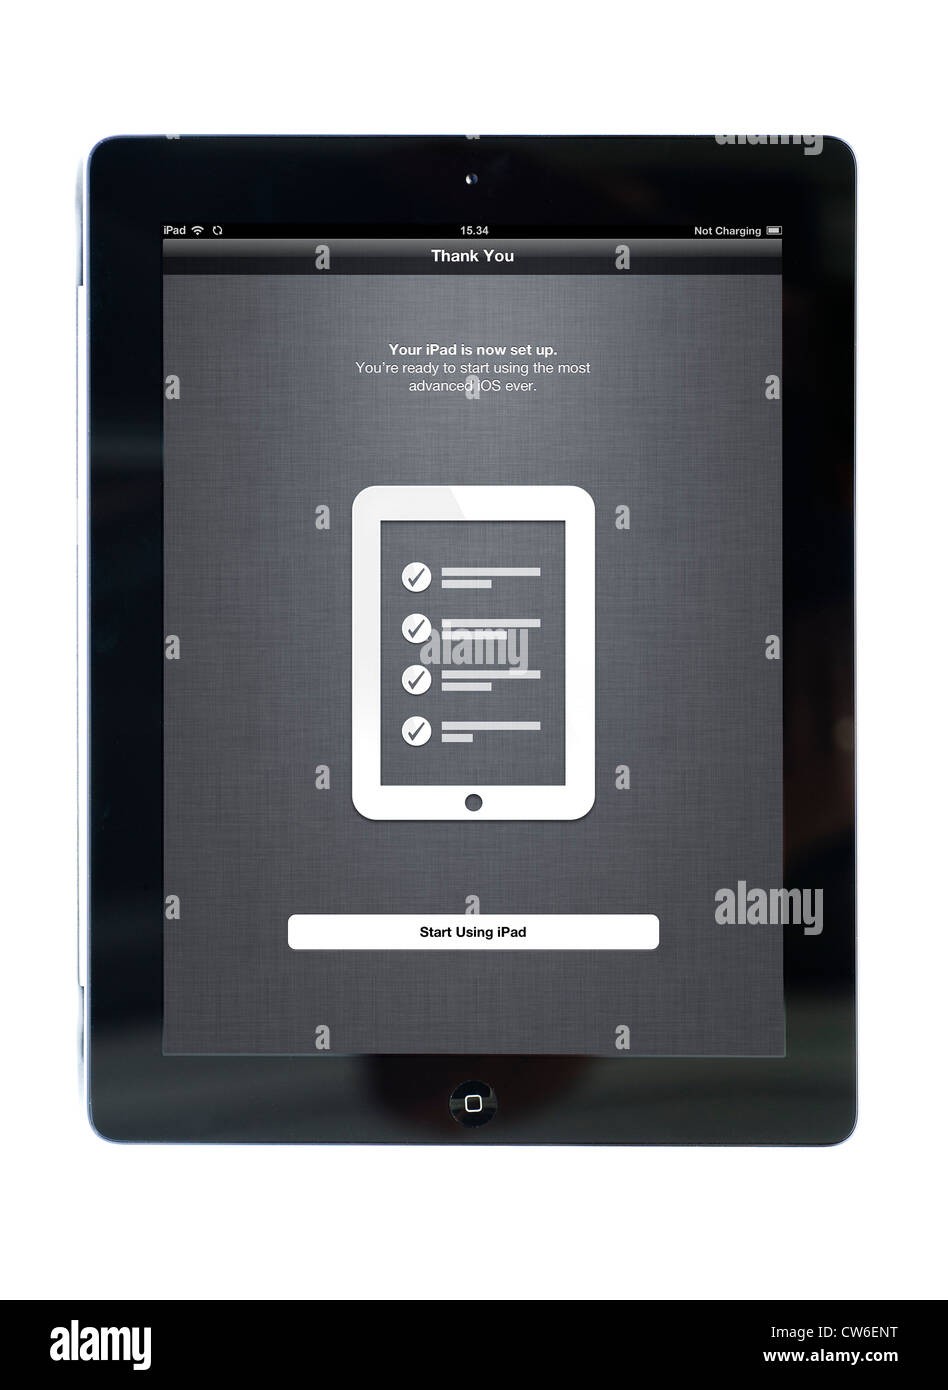 Set up screen on an Apple iPad 3 tablet computer - Stock Image